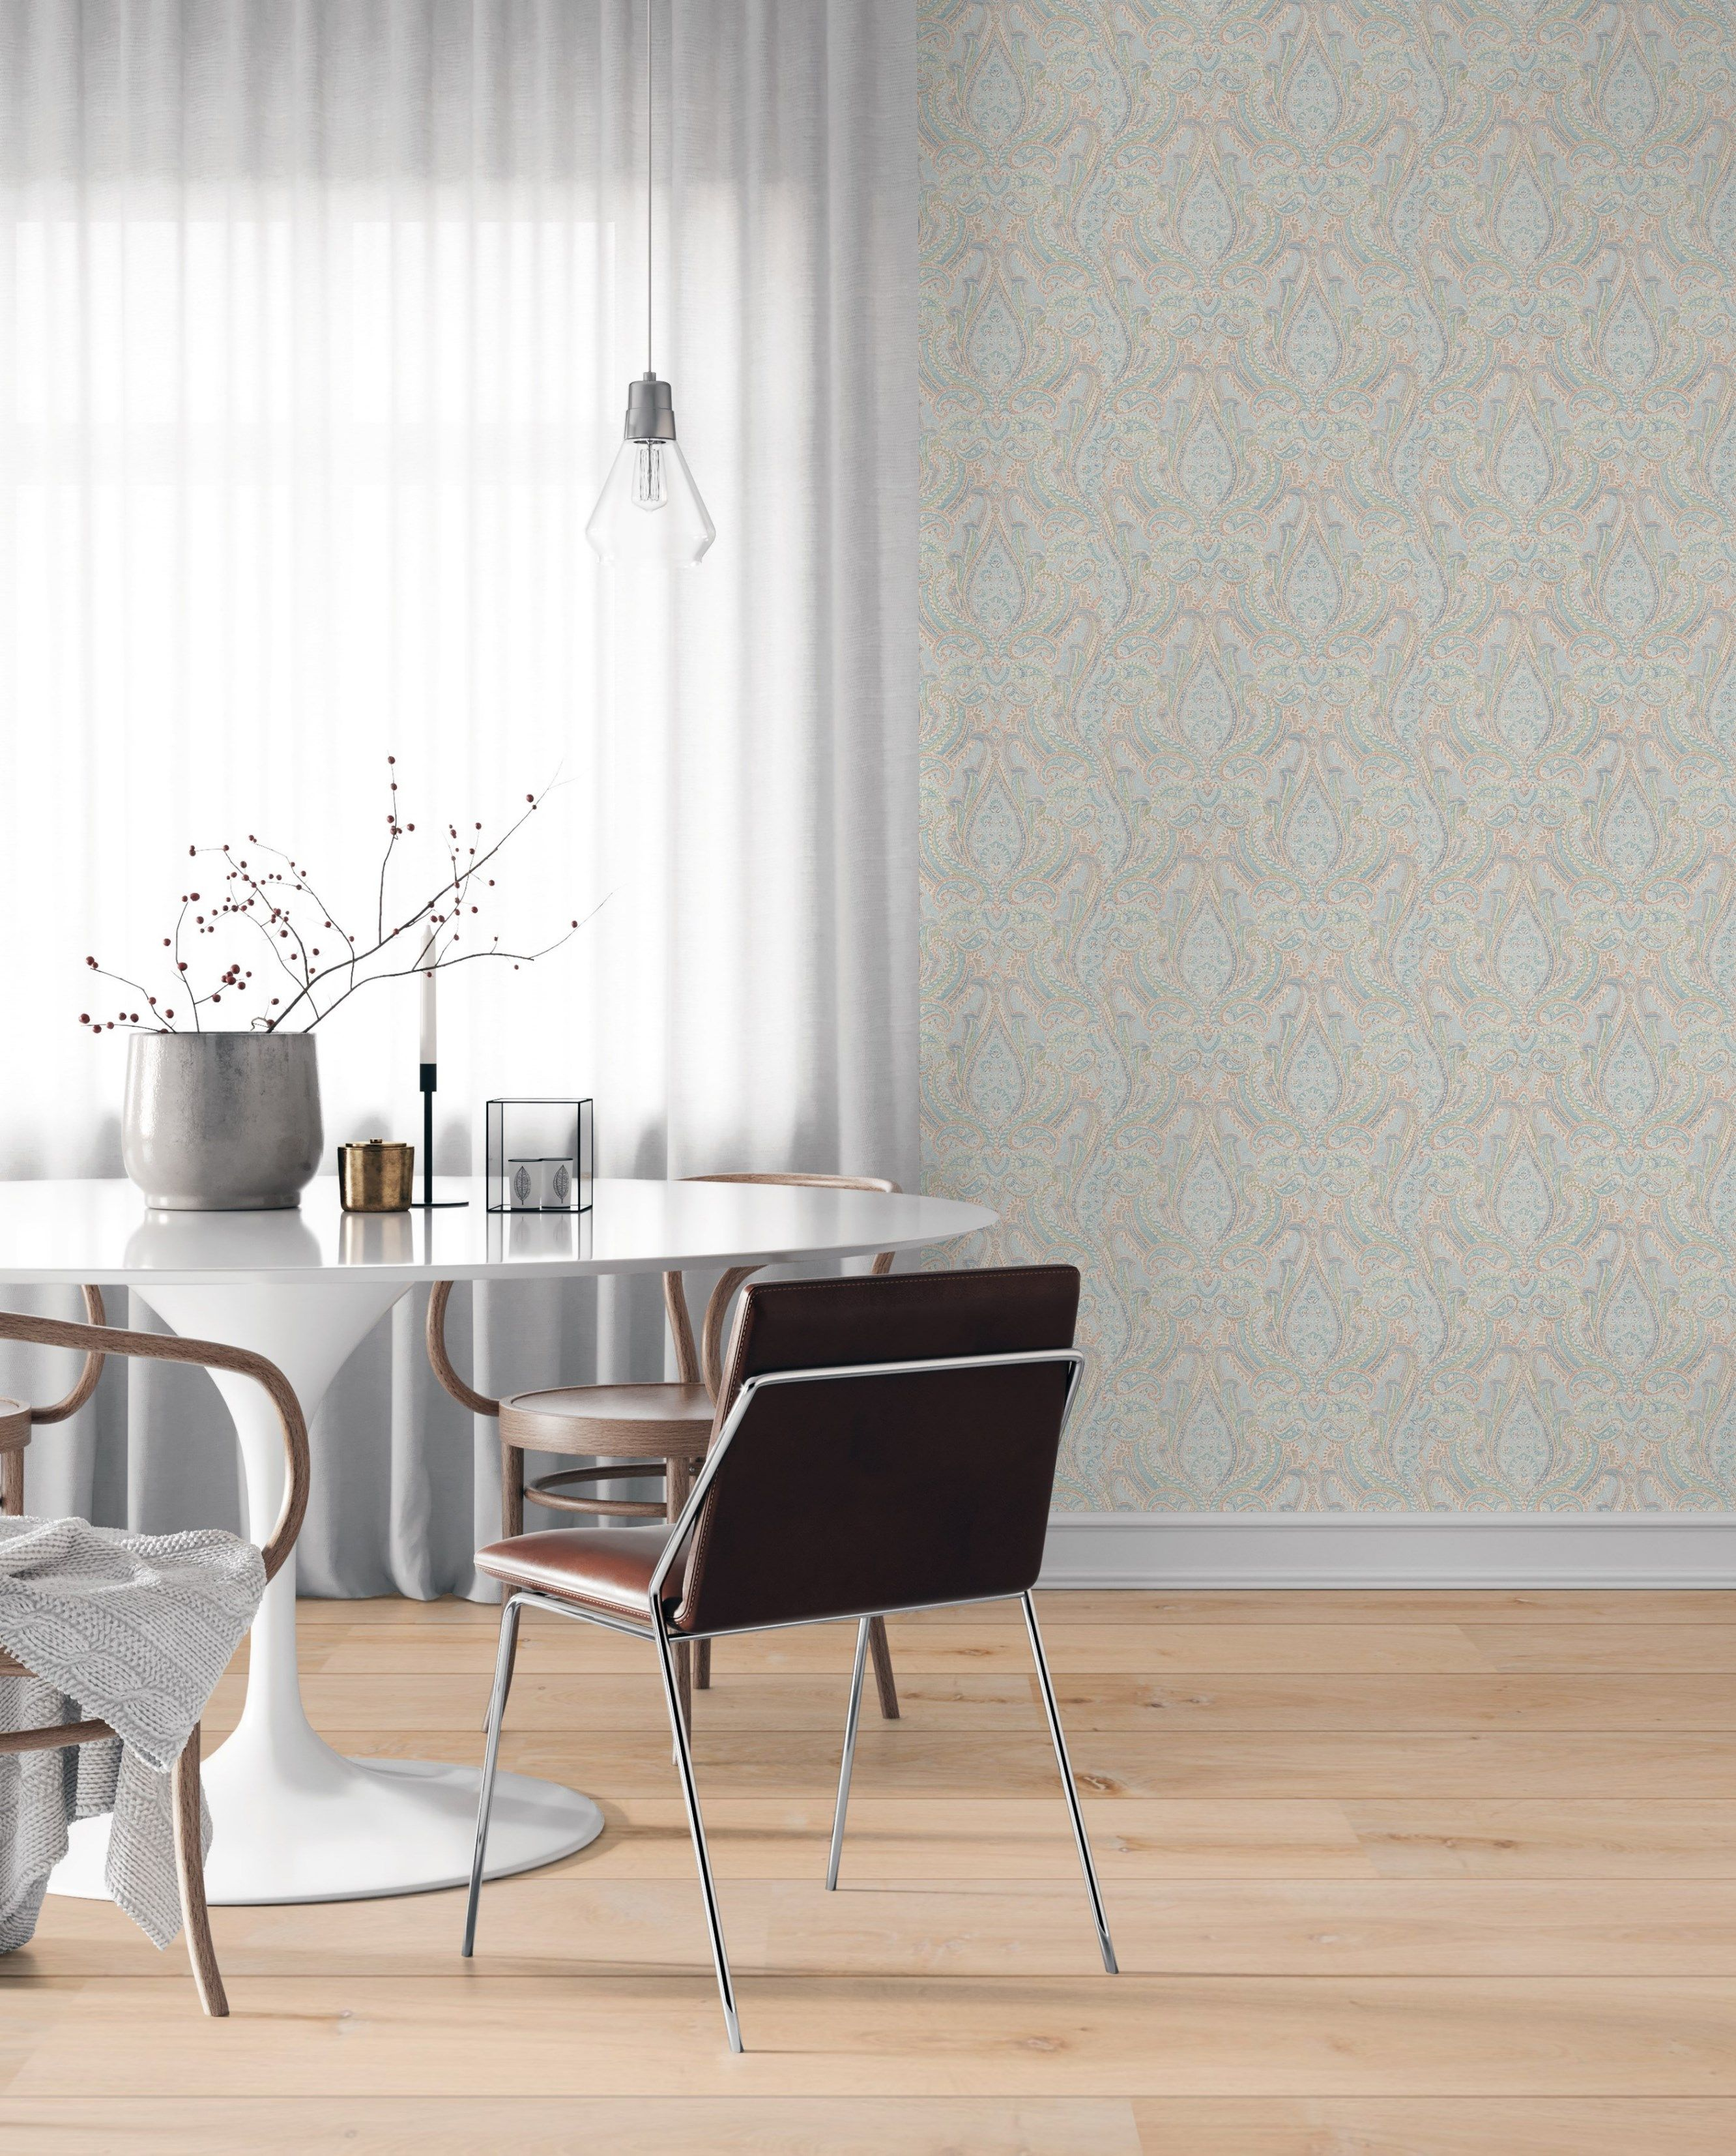 Flächenvorhang Rattan Buy Natural Trees Wallpaper Online Today At Next Rep Of Ireland